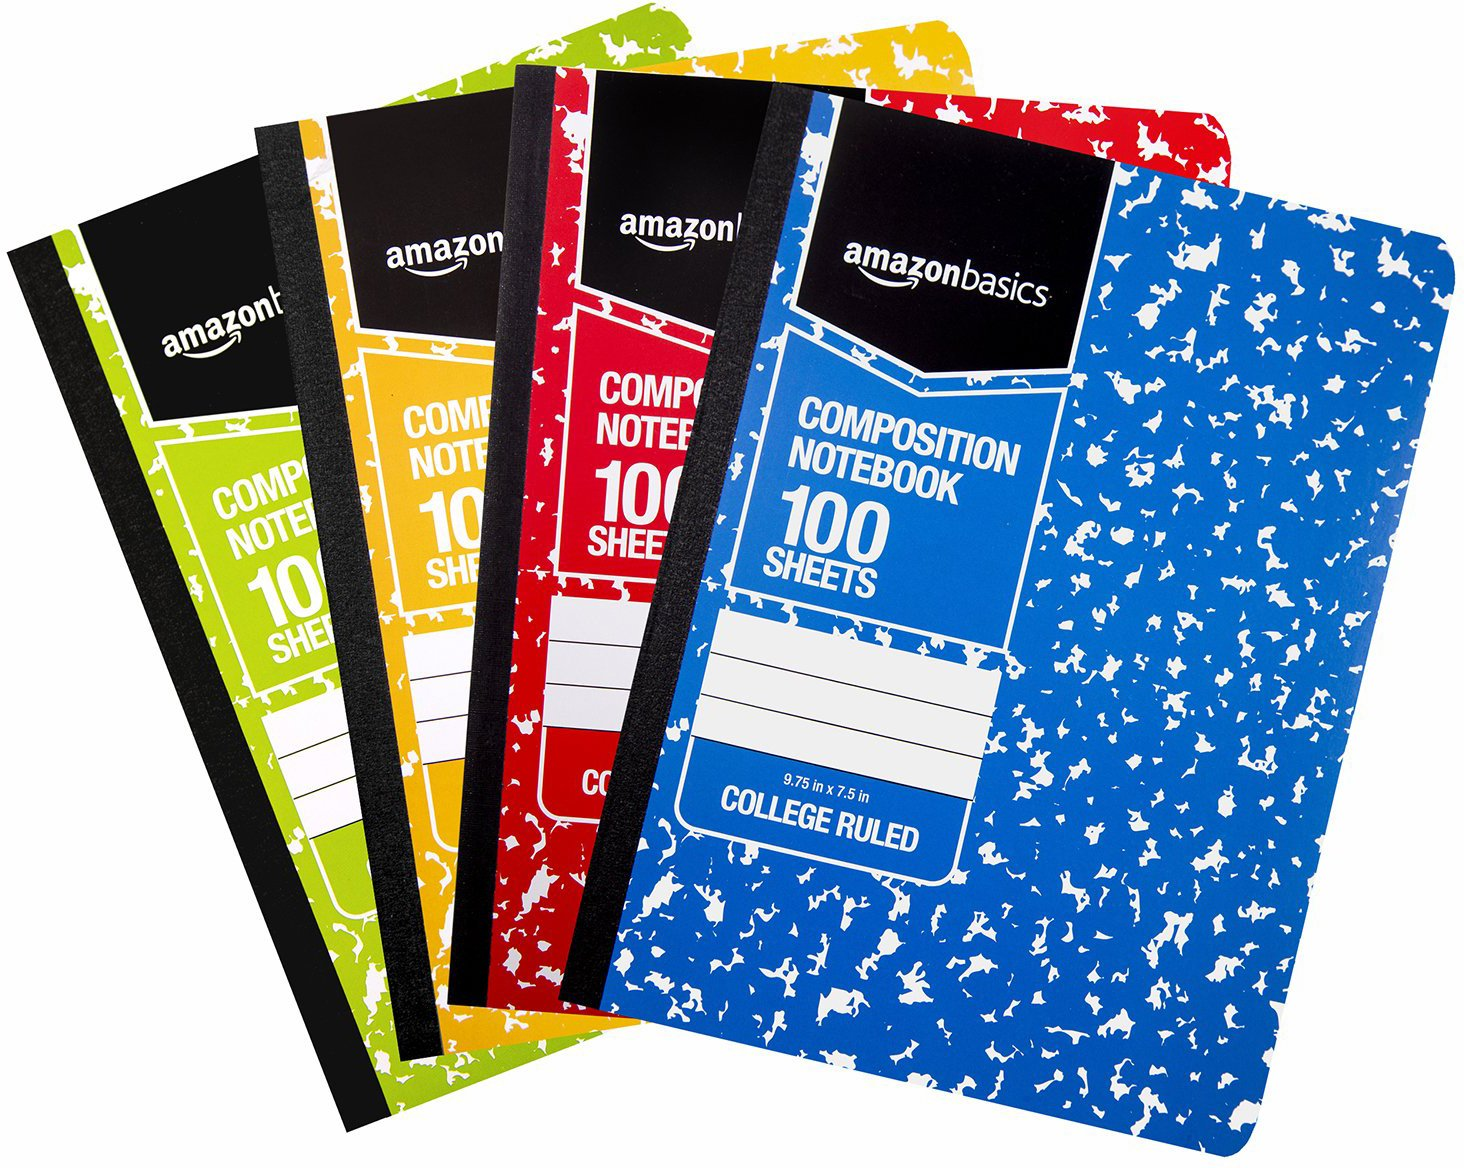 AmazonBasics College Ruled Composition Notebook, 100-Sheet, Assorted Marble Colors, 4-Pack